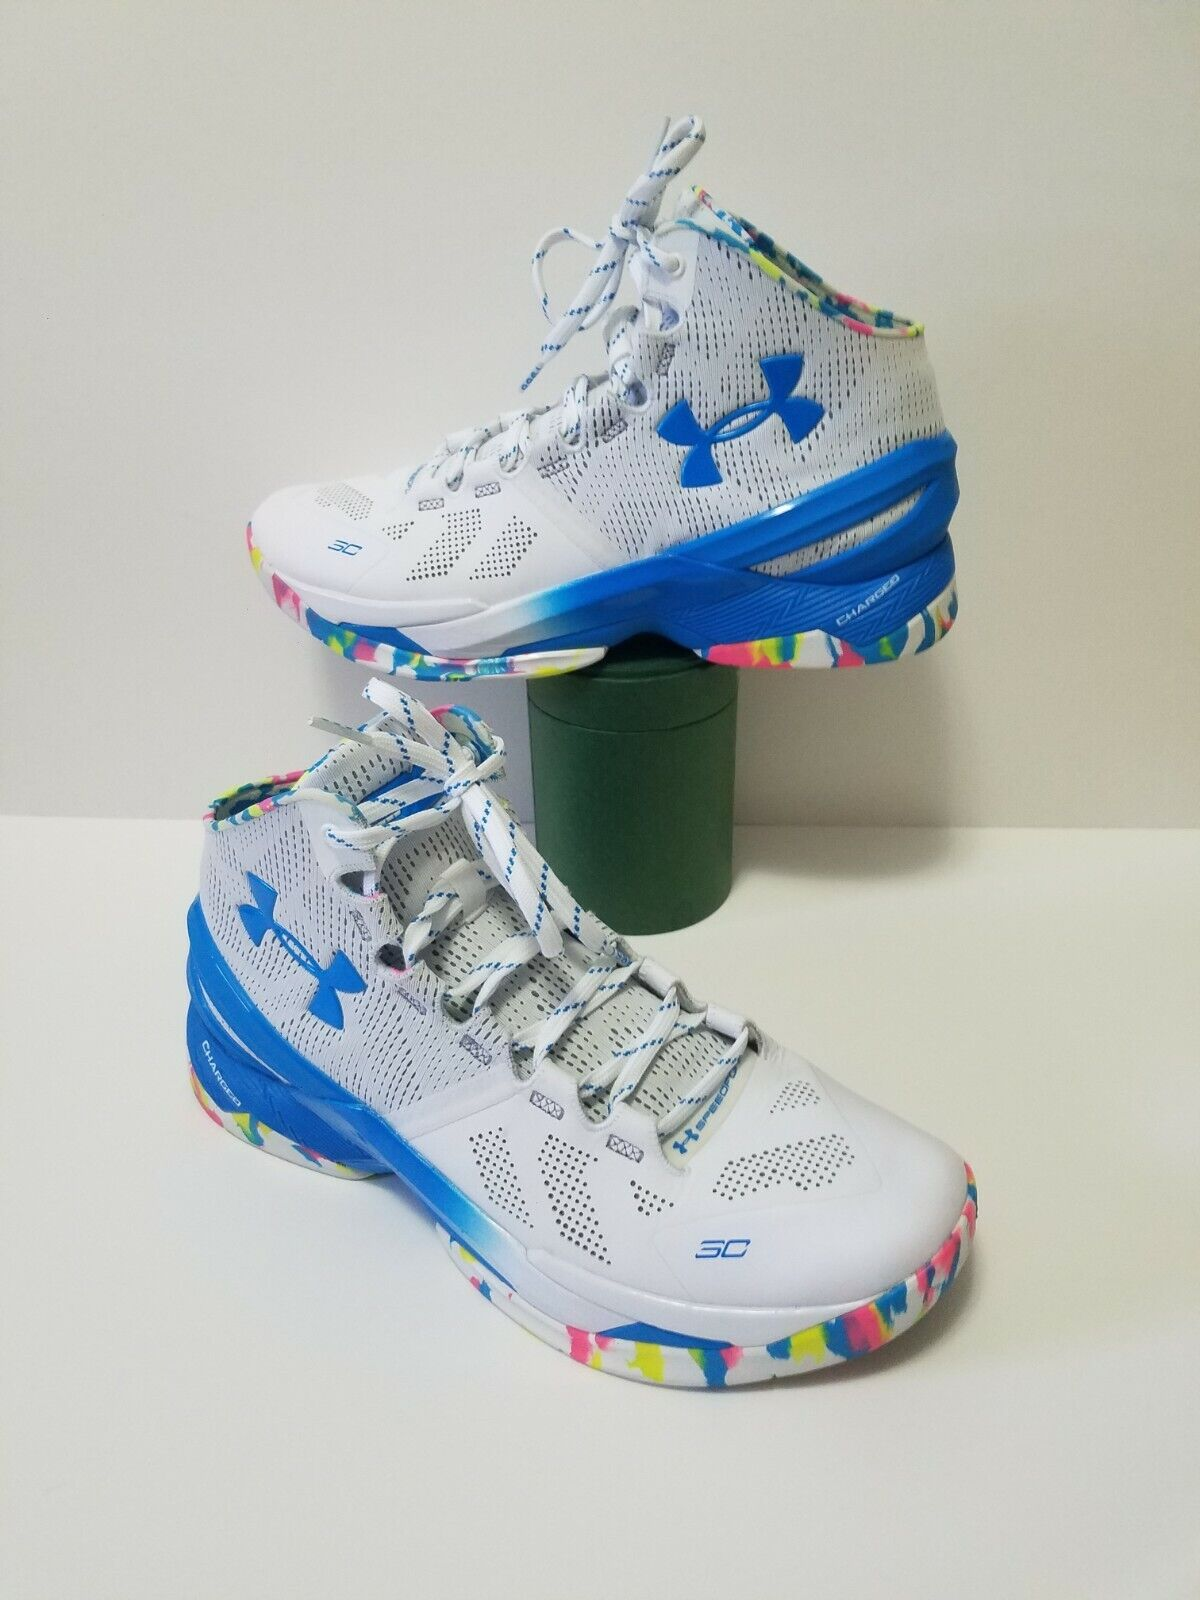 lavar Insatisfecho Embutido  Under Armour UA Curry 2 Basketball Shoes Neon Birthday Size 9.5 PRICE 2  SALE!!!! for sale online